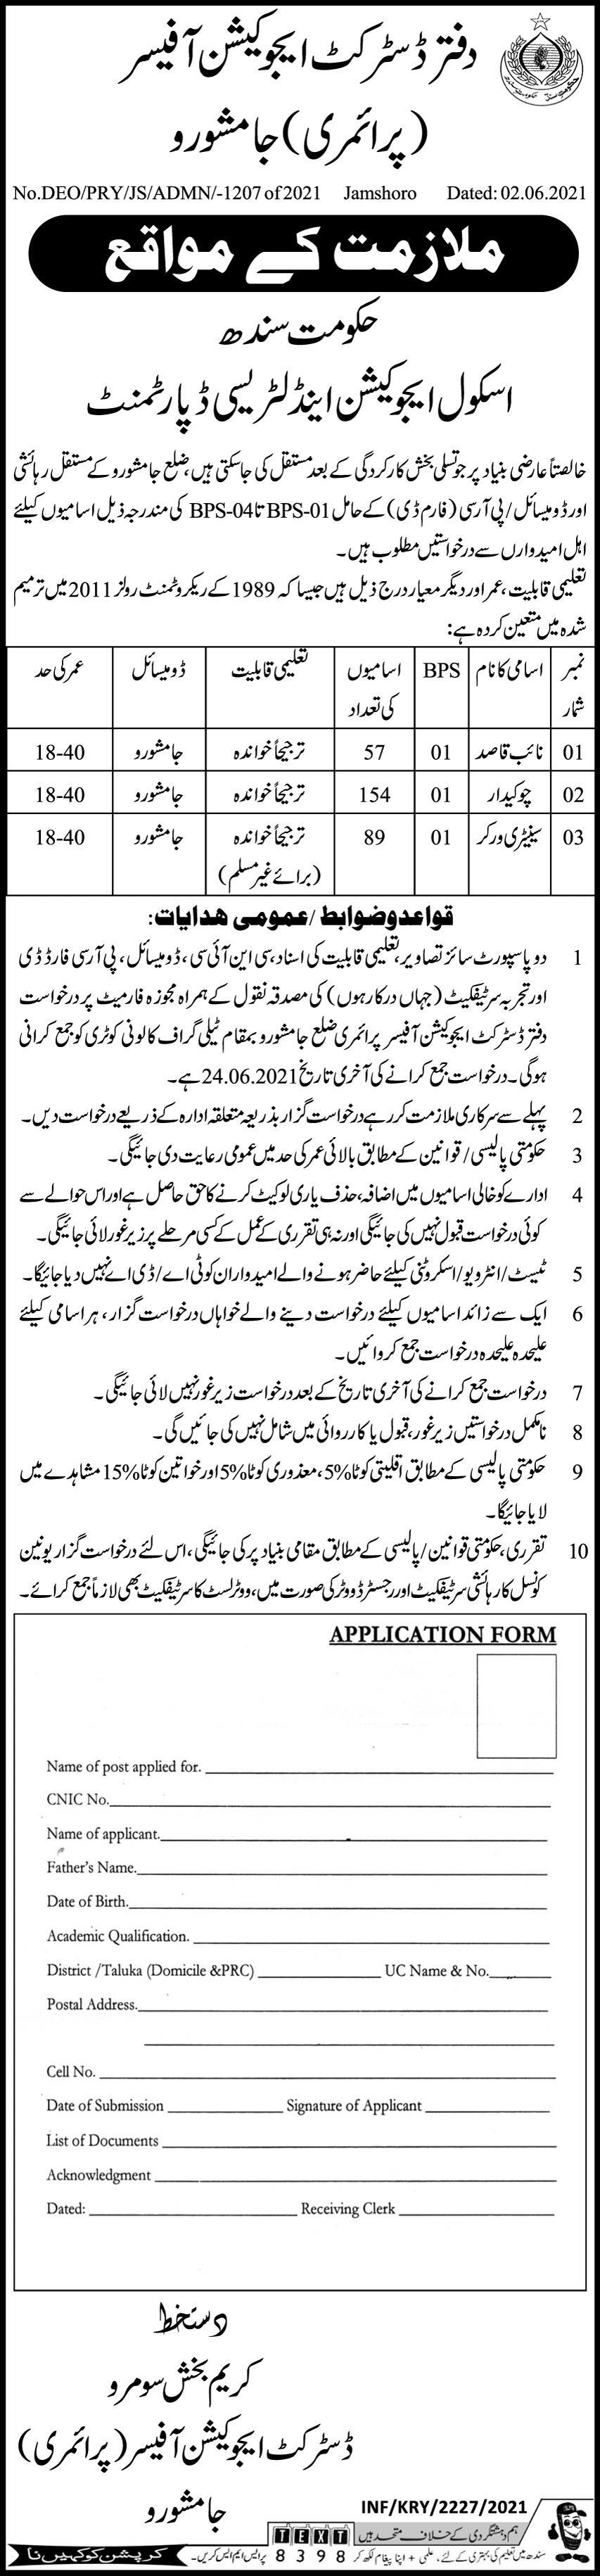 Office Of The District Education Officer Primary Jamshoro Sindh Jobs 2021